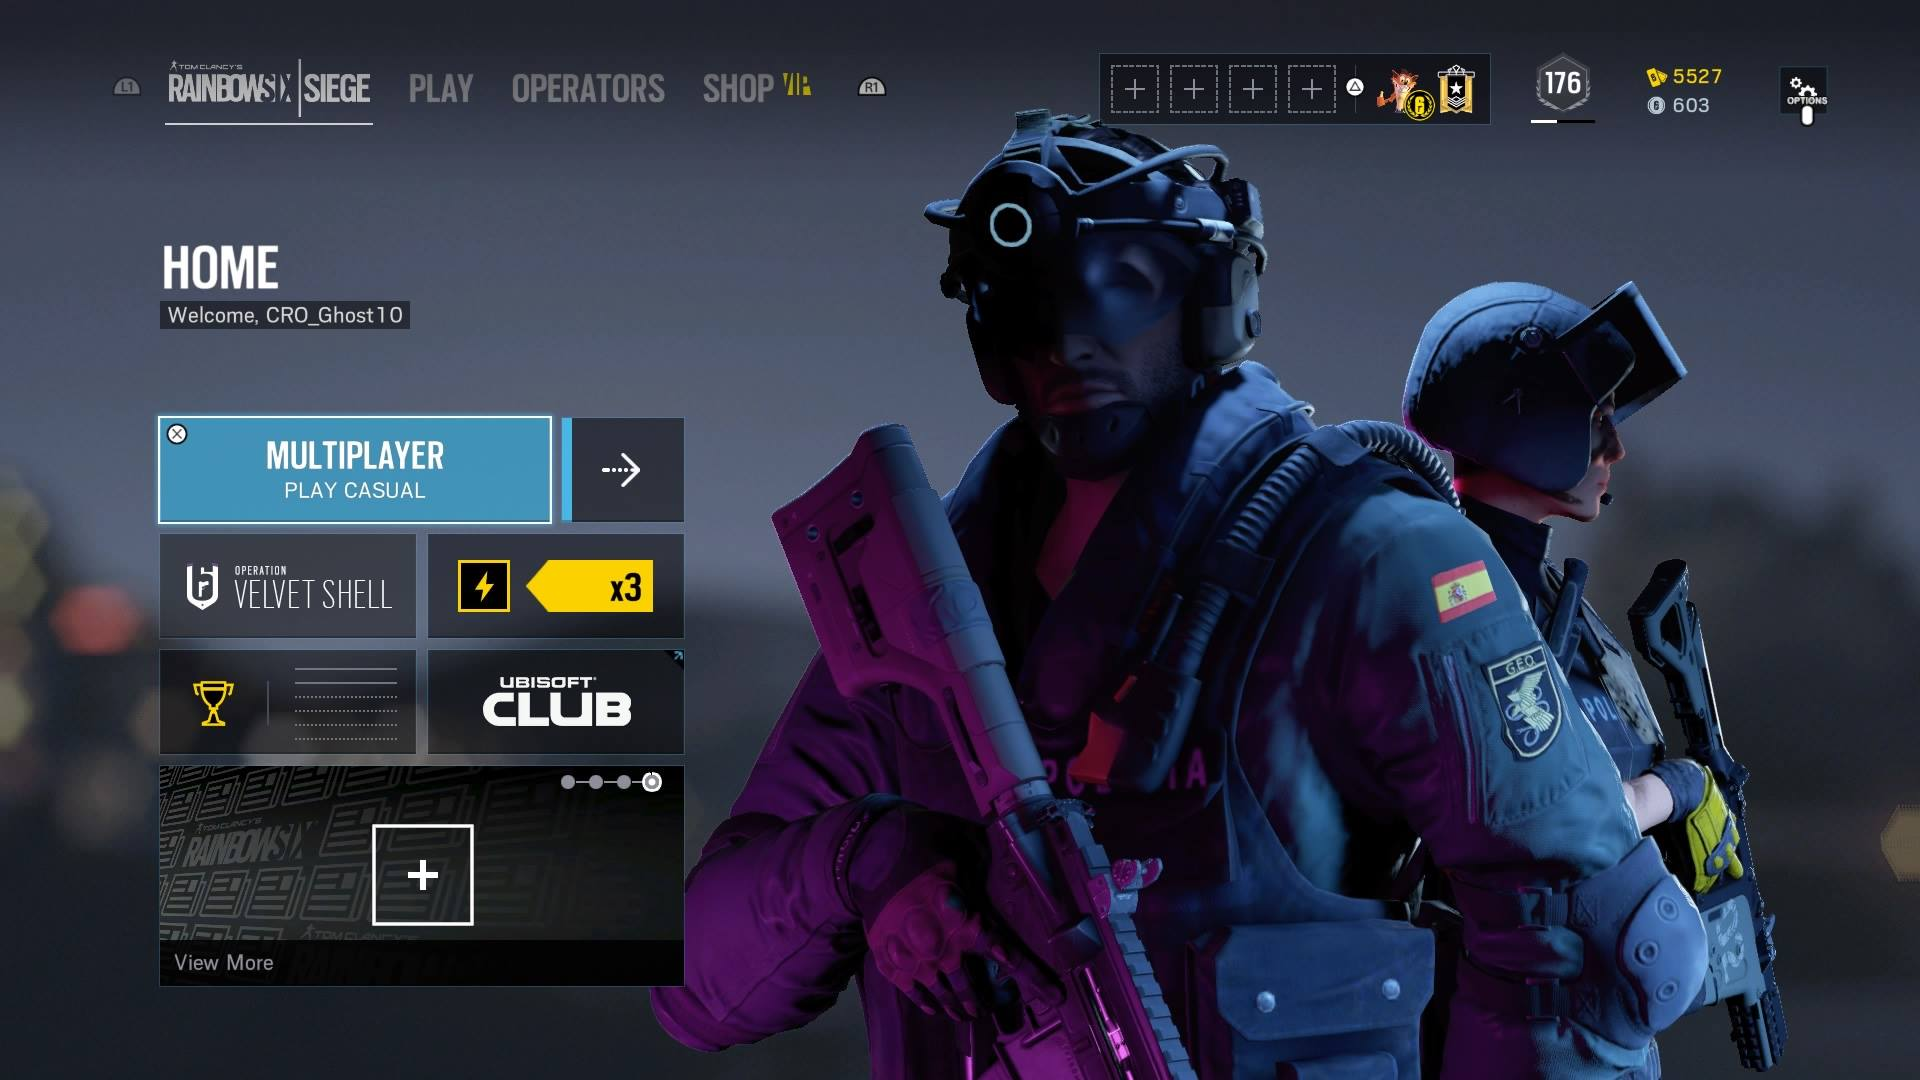 Rainbow Six Siege Menu